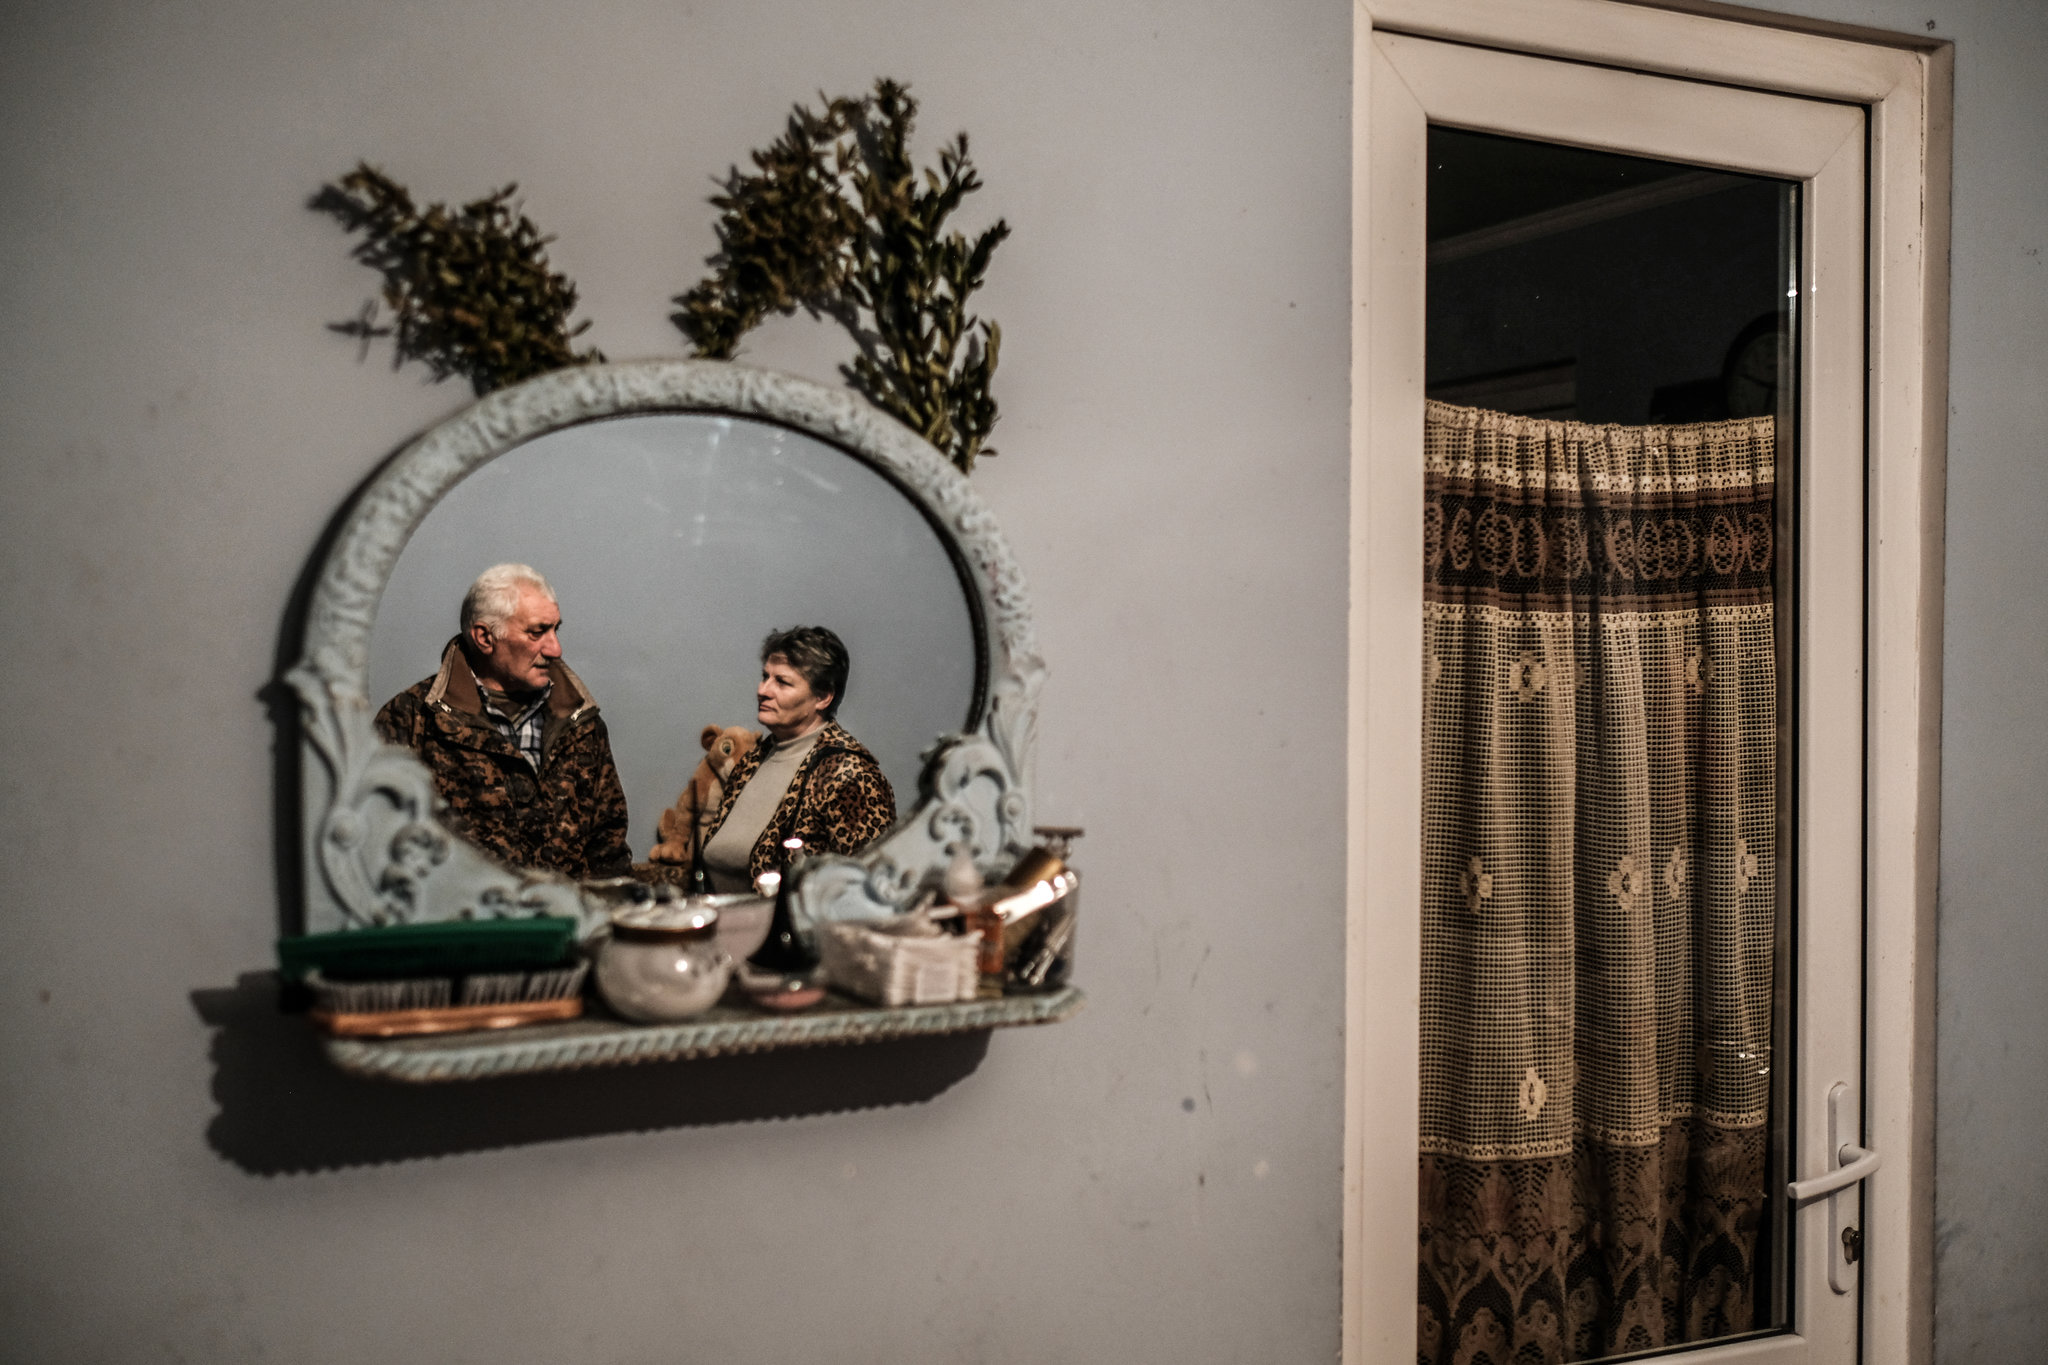 Galina Kelekhsaeva, whose heritage is Ossetian, with her husband, whose heritage is Georgian. They live in an I.D.P. settlement in the village of Shavshvebi.